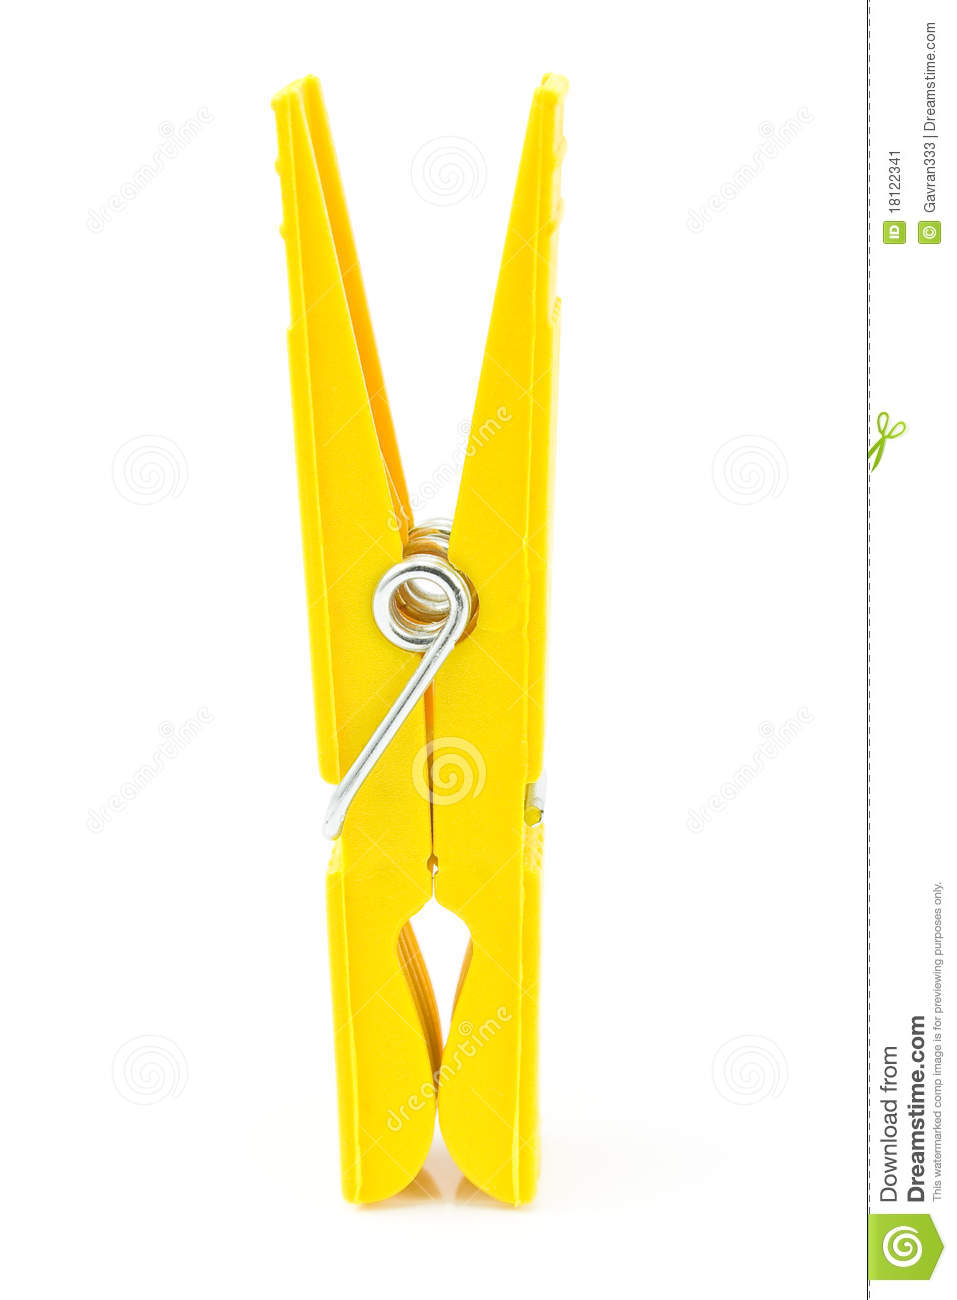 Yellow Clothespin Stock Image - Image: 18122341